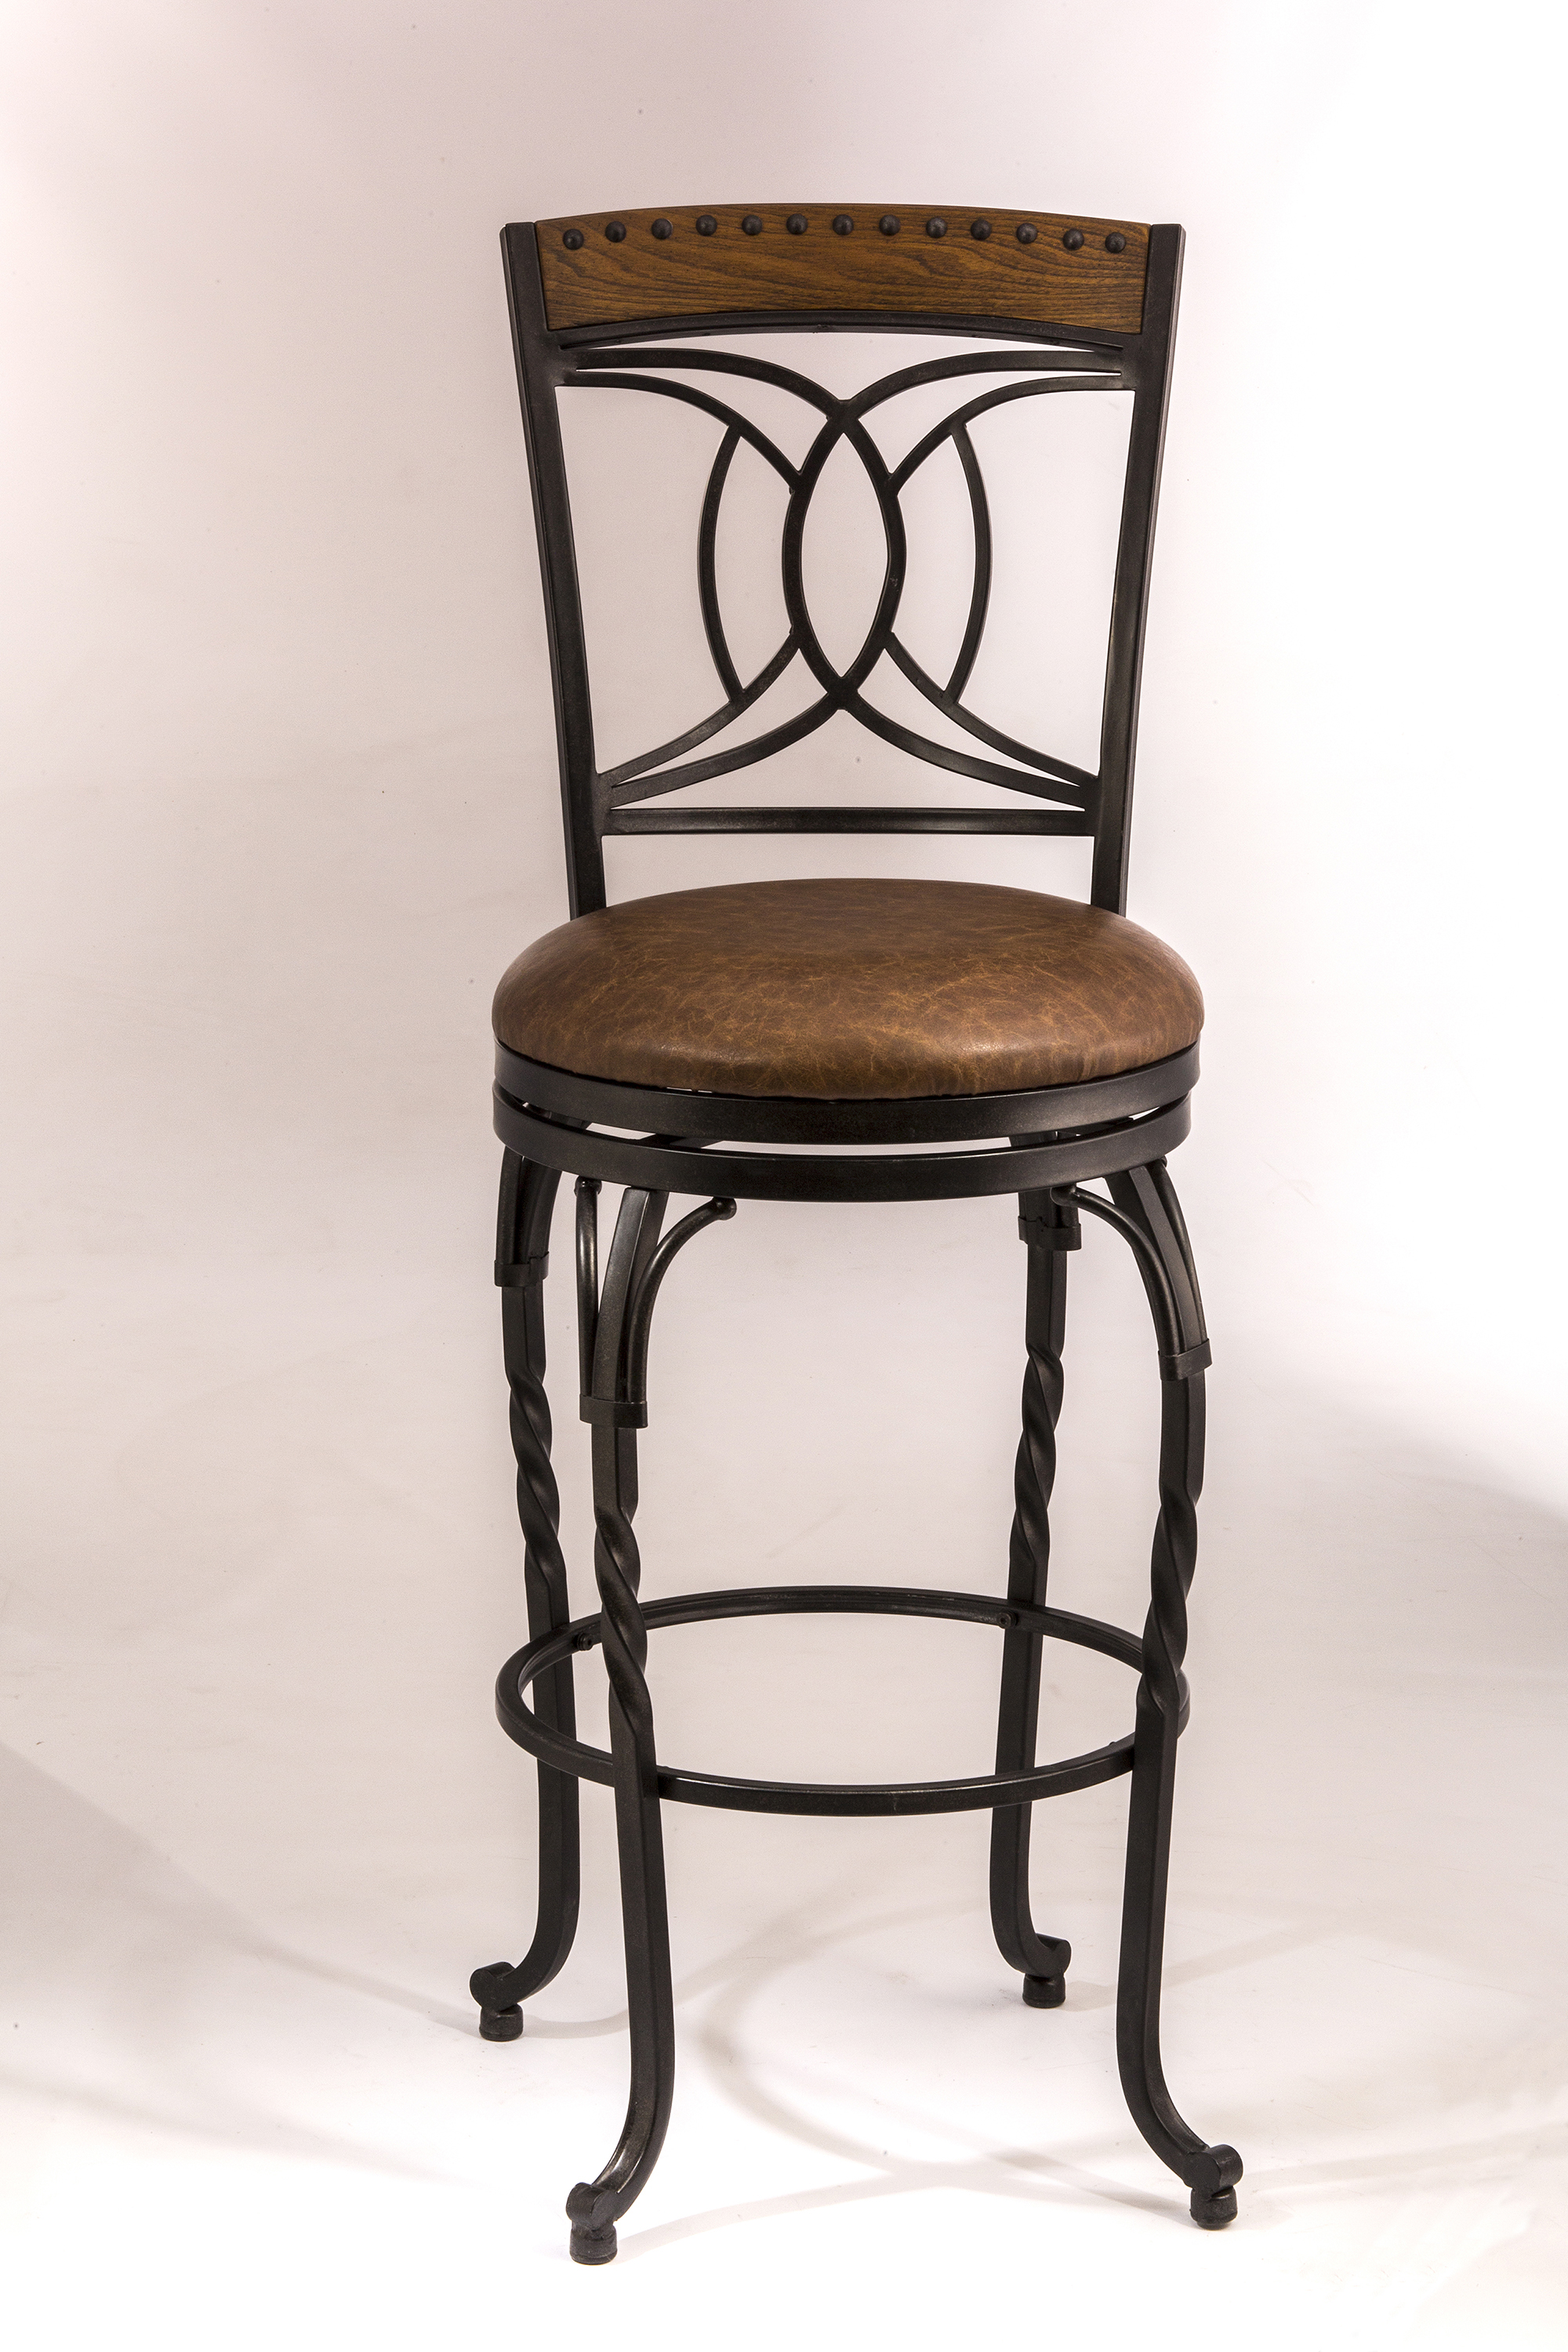 Hillsdale Metal Stools 5701 830 Swivel Bar Height Stool